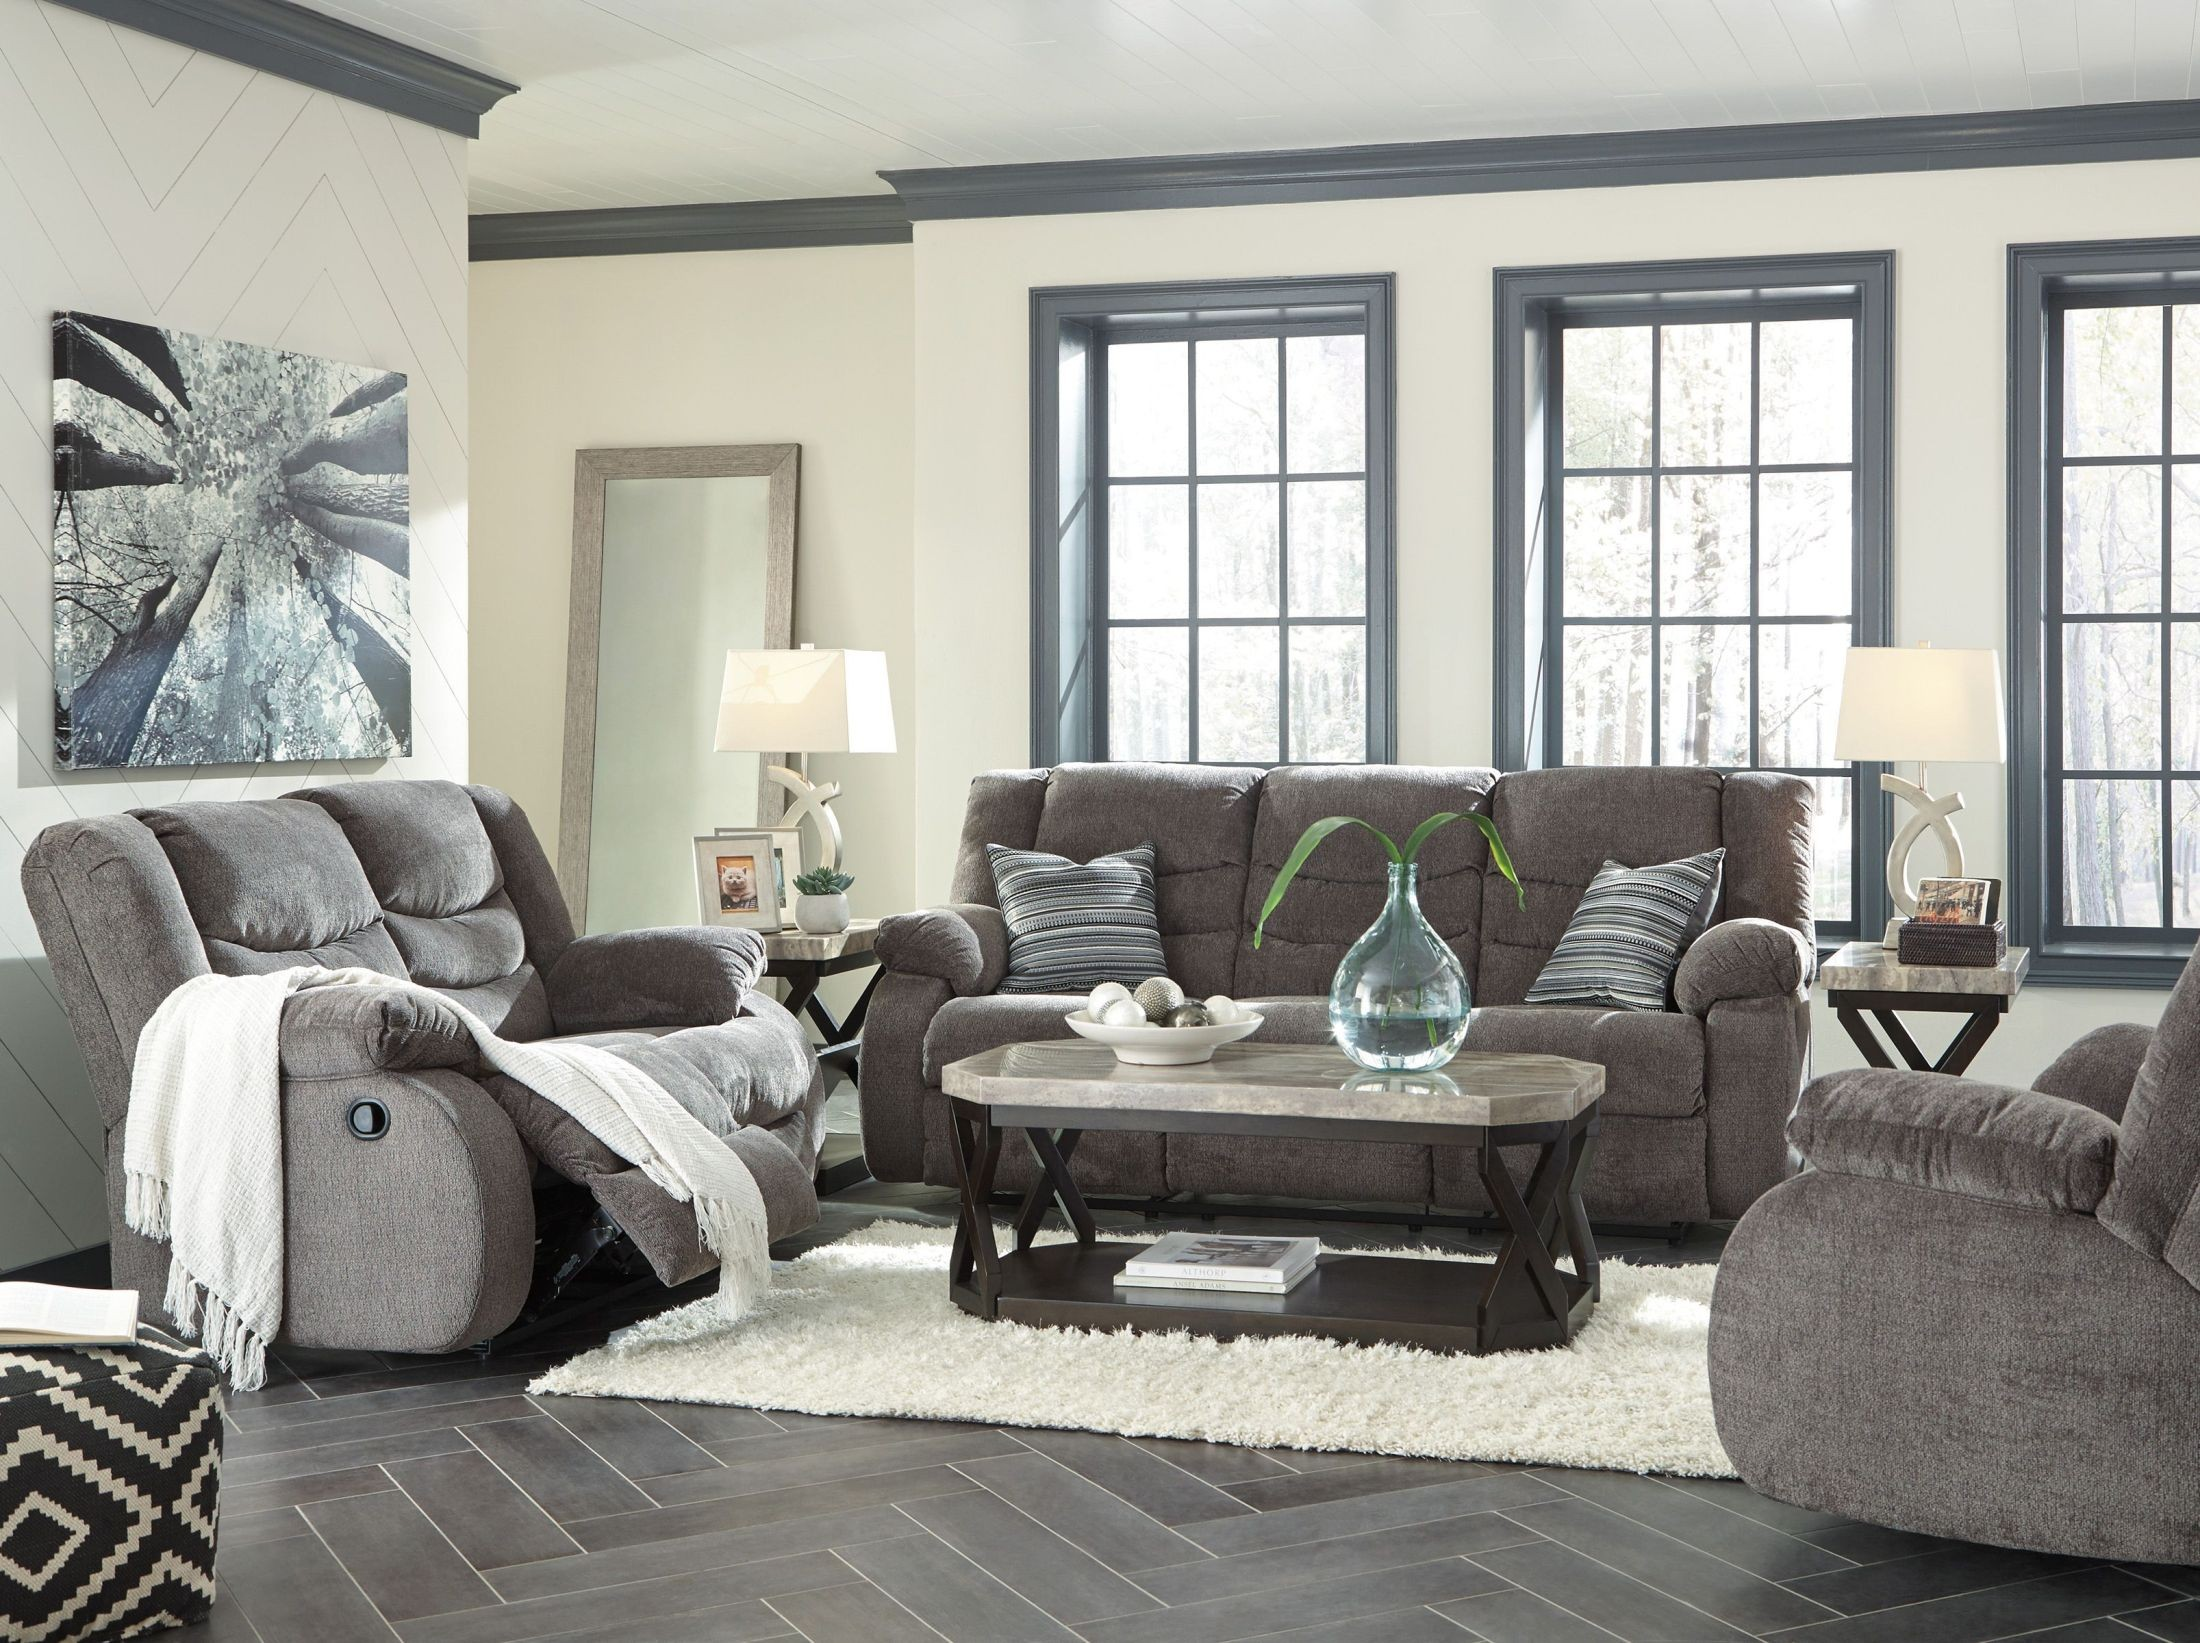 Tulen Gray Reclining Living Room Set From Ashley Coleman